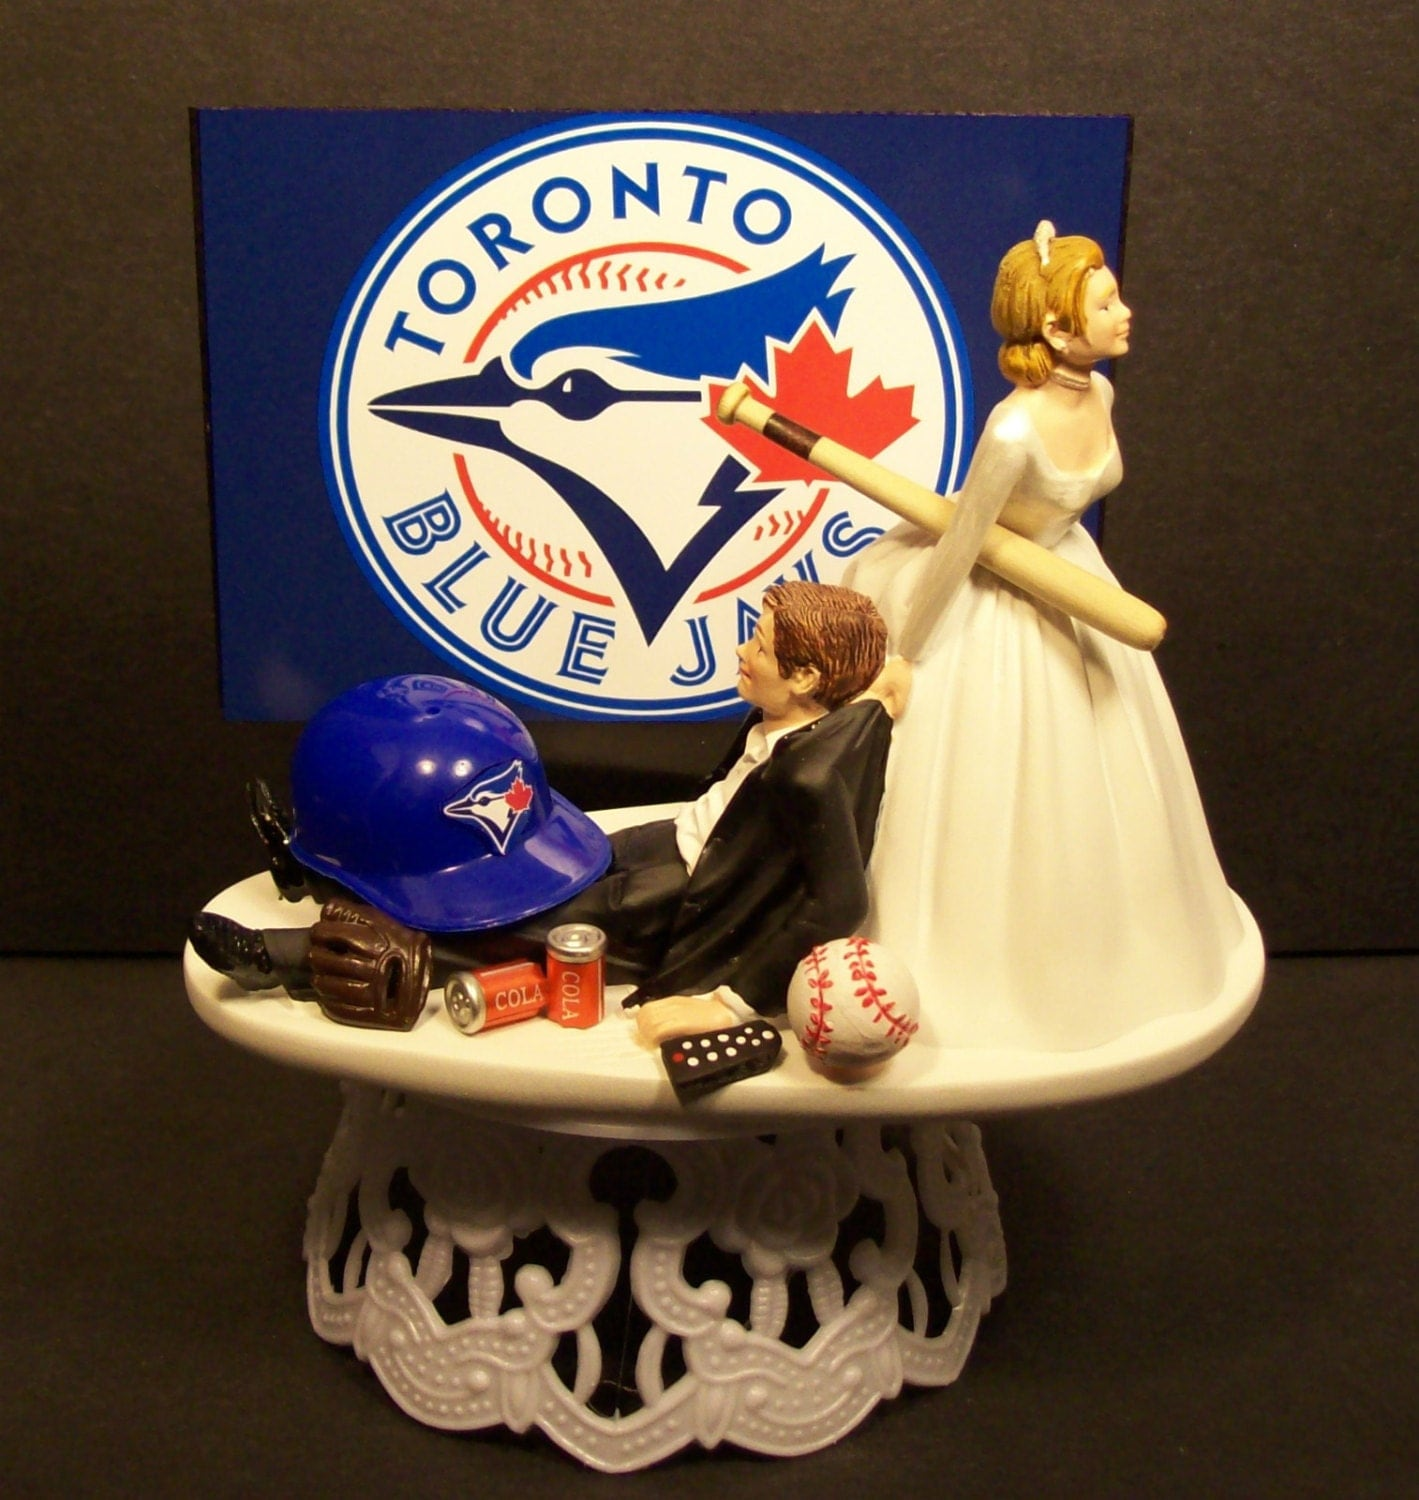 TORONTO BLUE JAYS Baseball Or Your Team Bride And By Mikeg1968